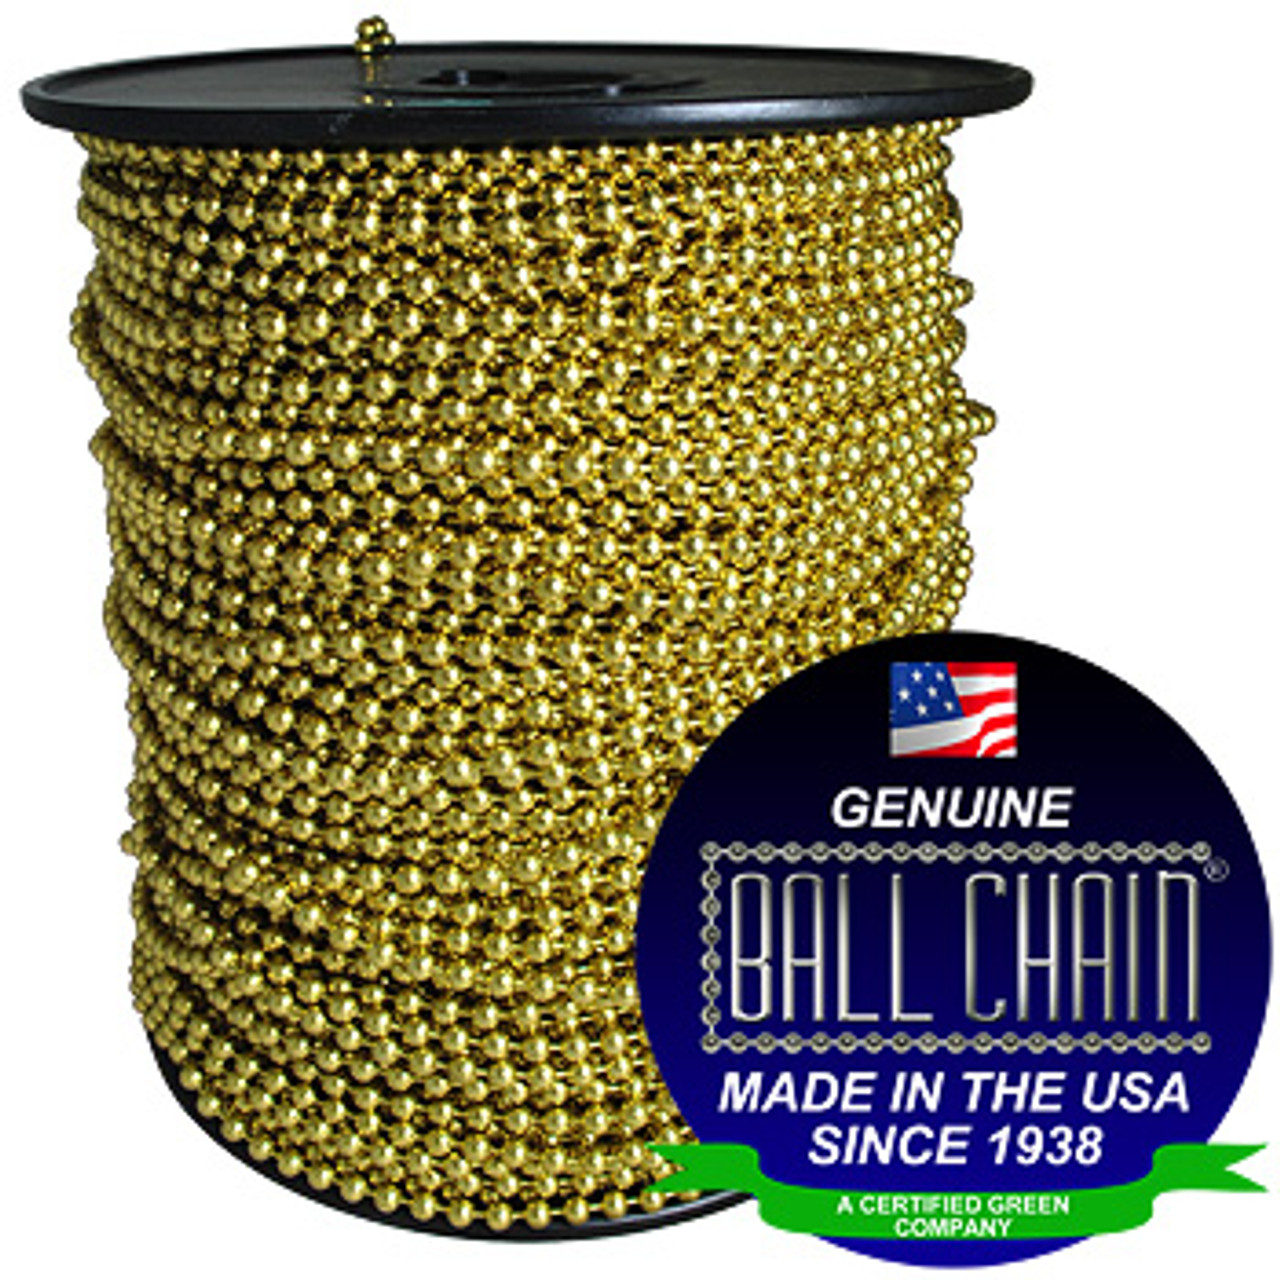 #1 Yellow Brass Ball Chain Spool. Purchase this bead chain in bulk. it comes in a variety of spool sizes 100 foot spools to 2000 foot rolls of ball chain.